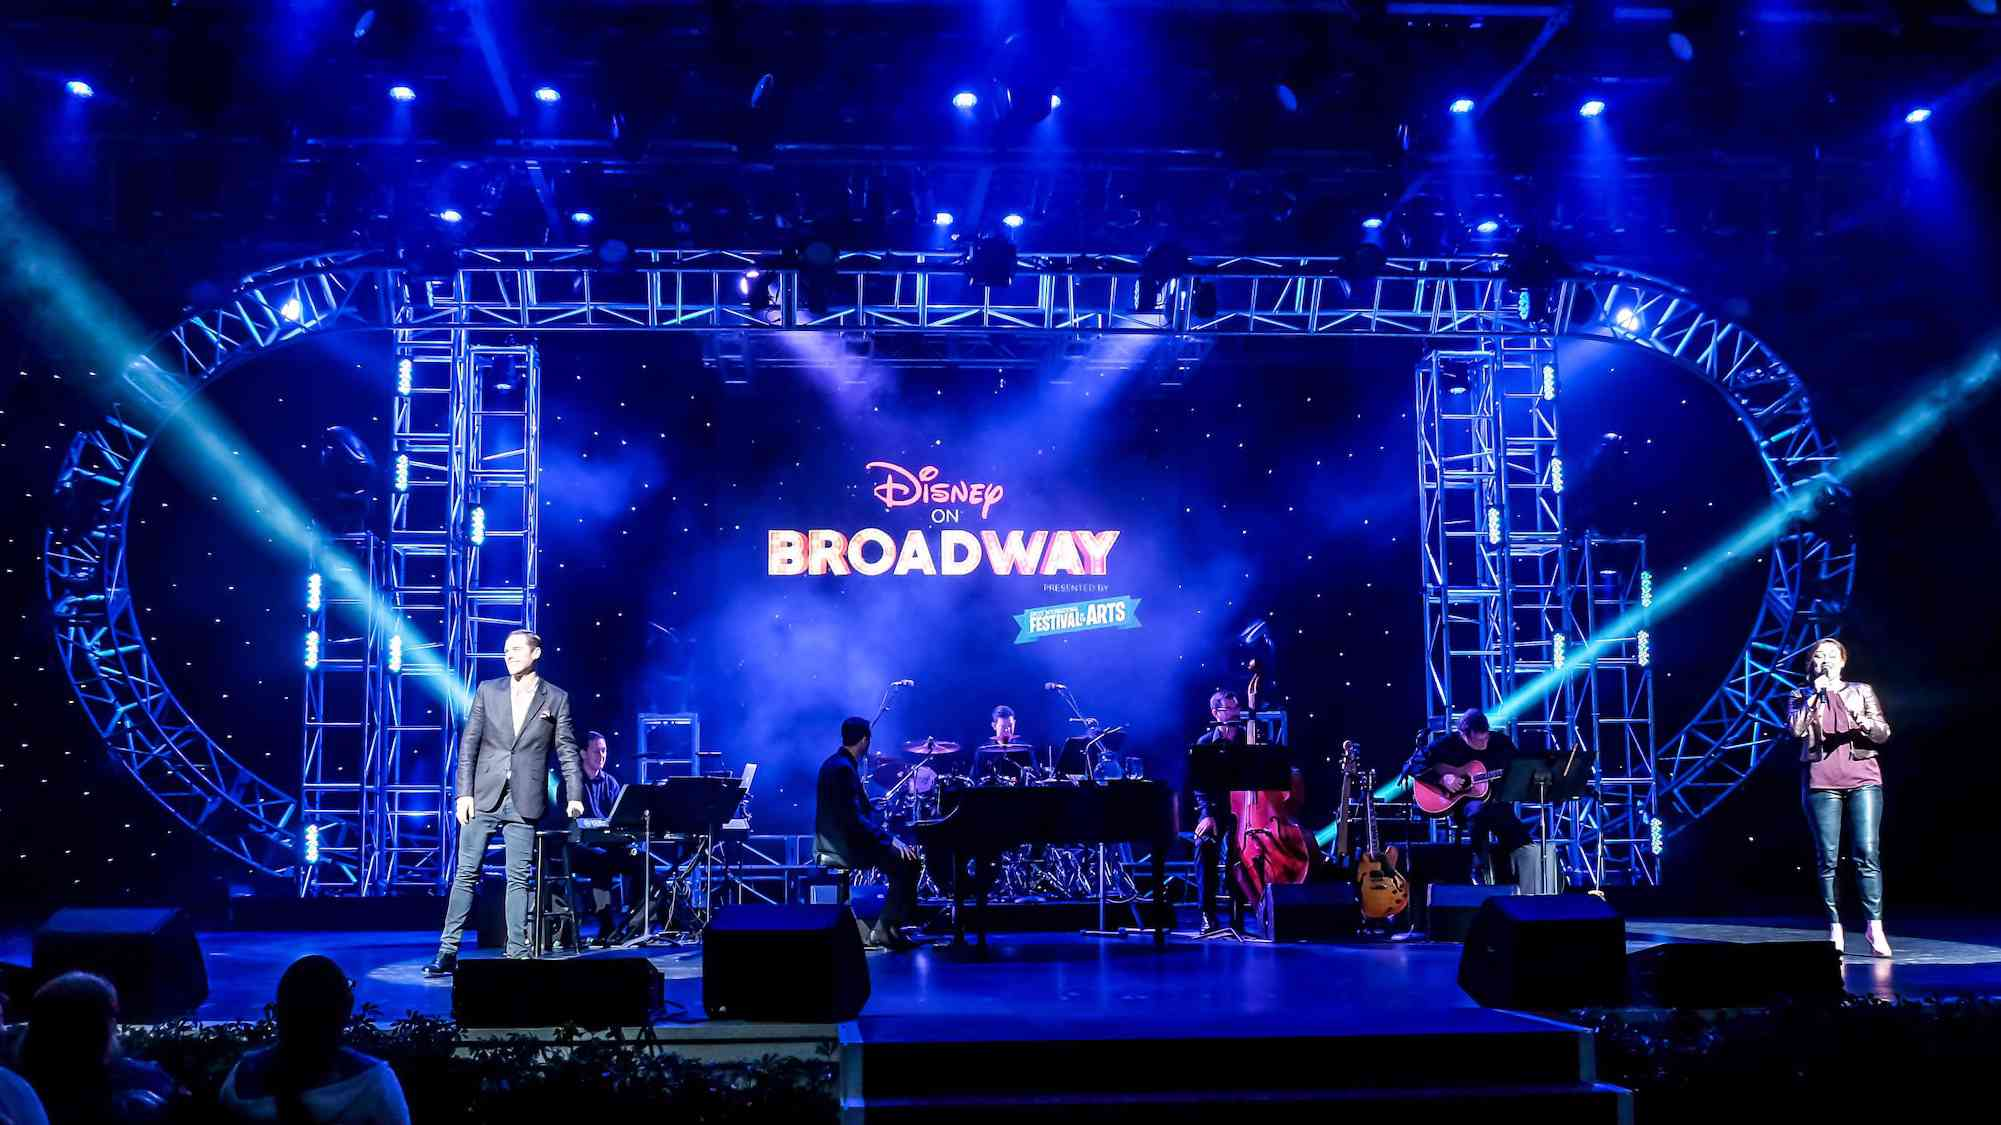 Disney on Broadway at Epcot International Festival of the Arts